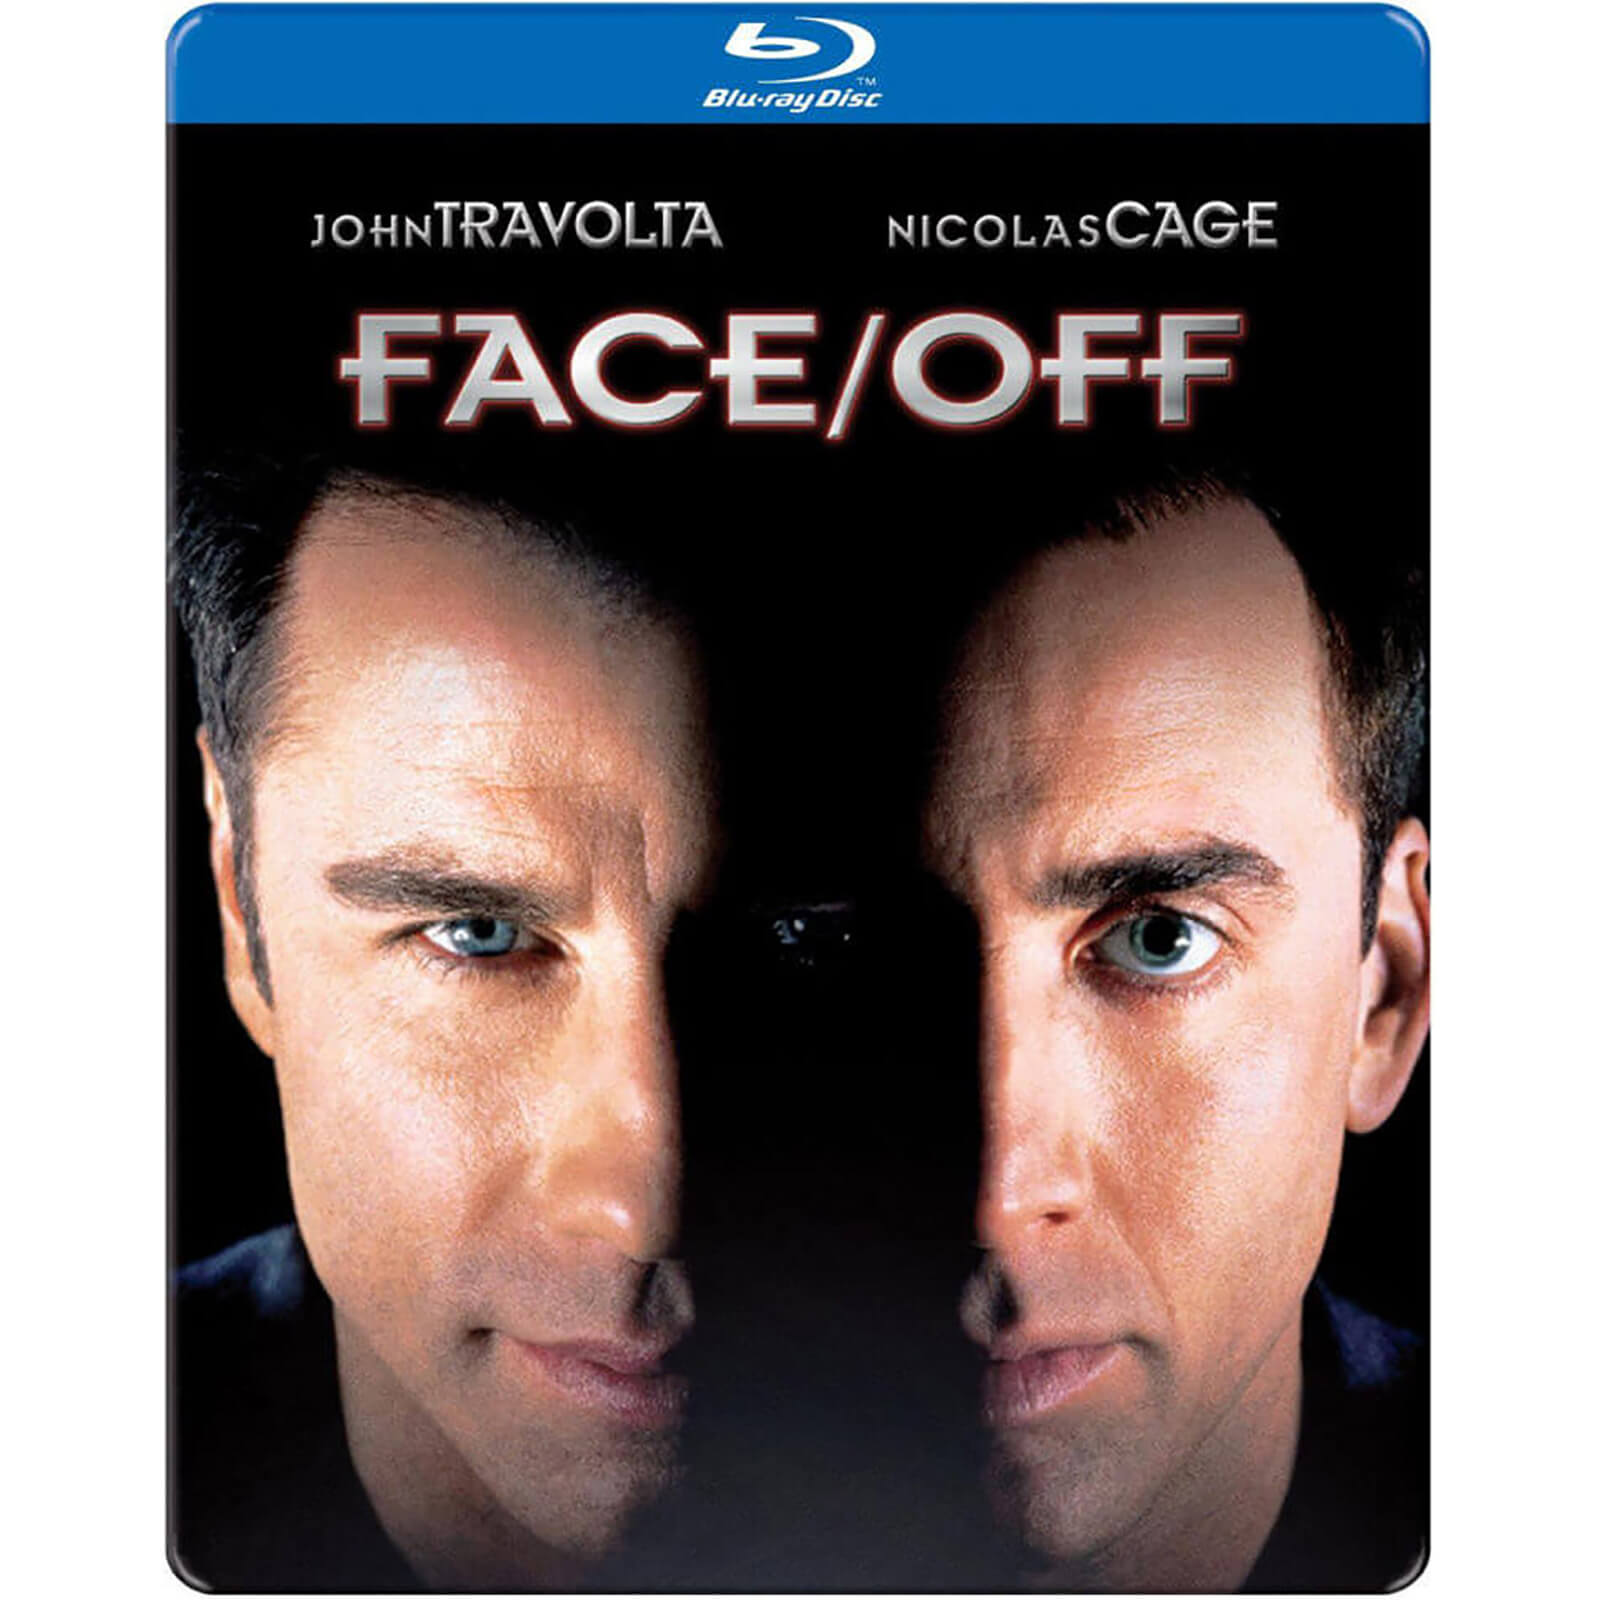 Face/Off - Import - Limited Edition Steelbook (Region 1)